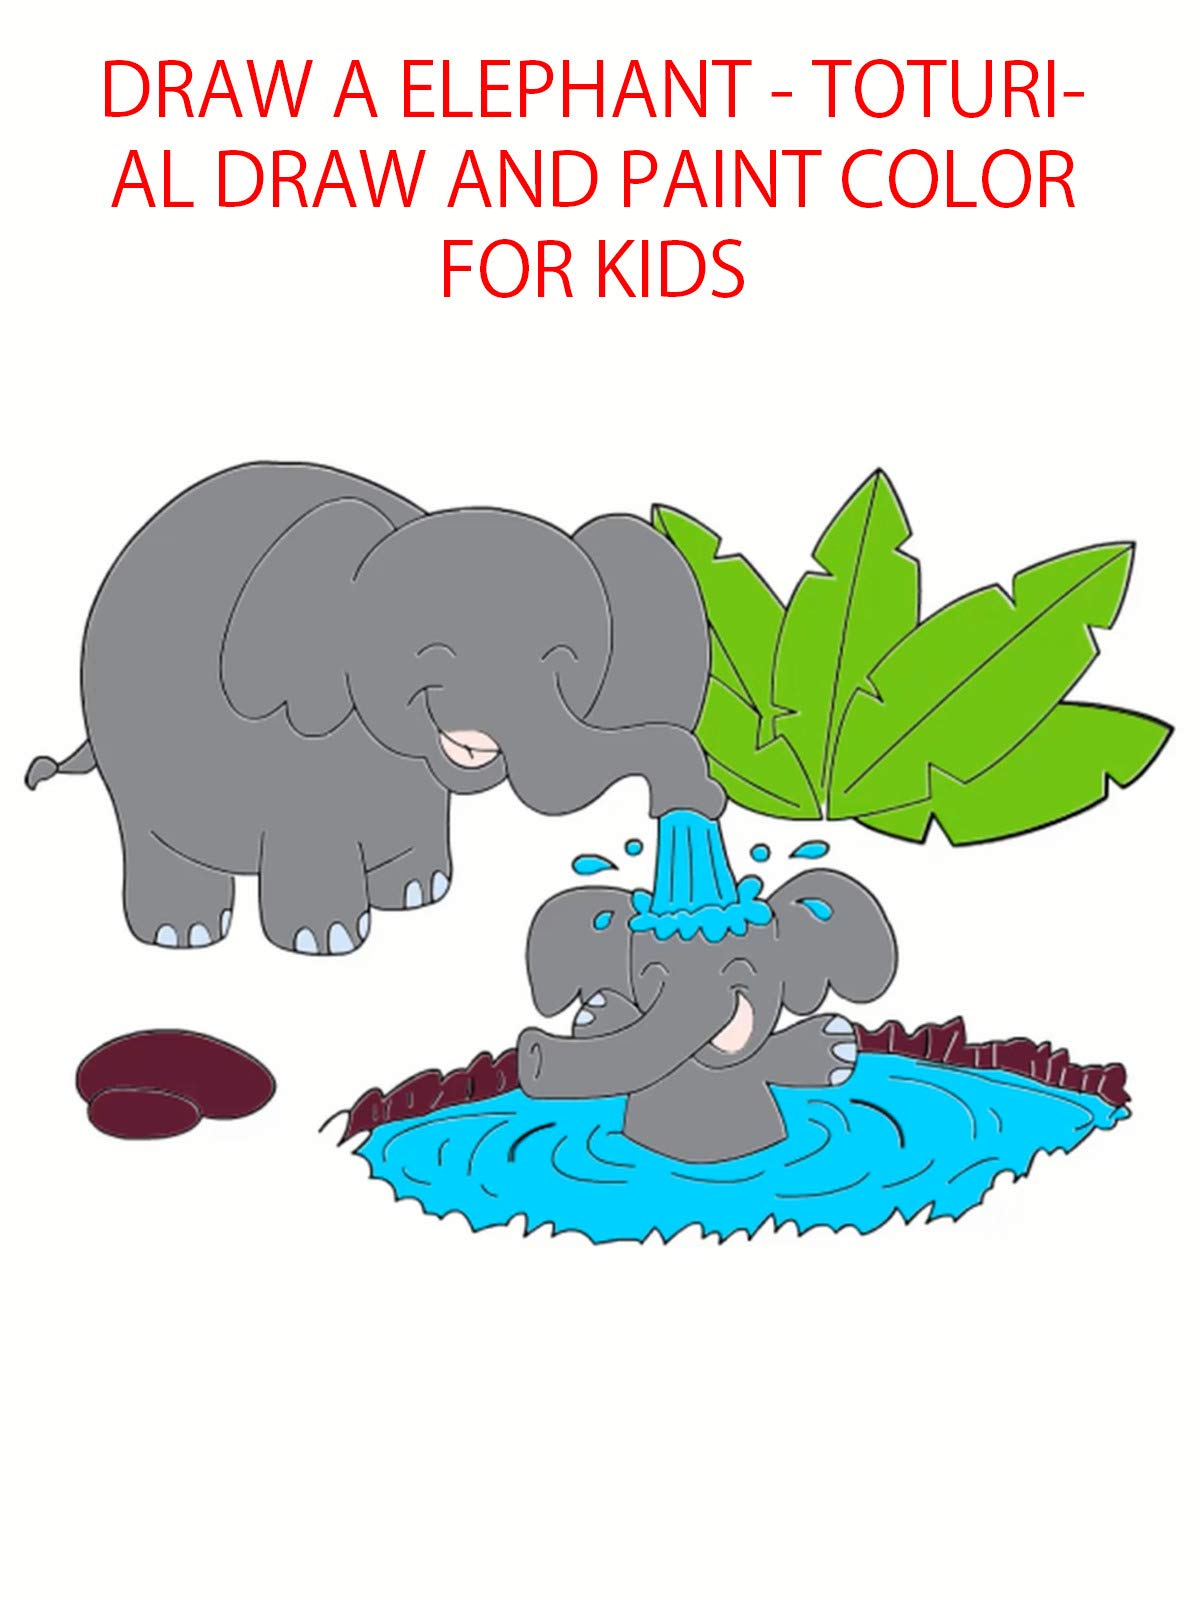 draw a elephant - toturial draw and paint color for kids